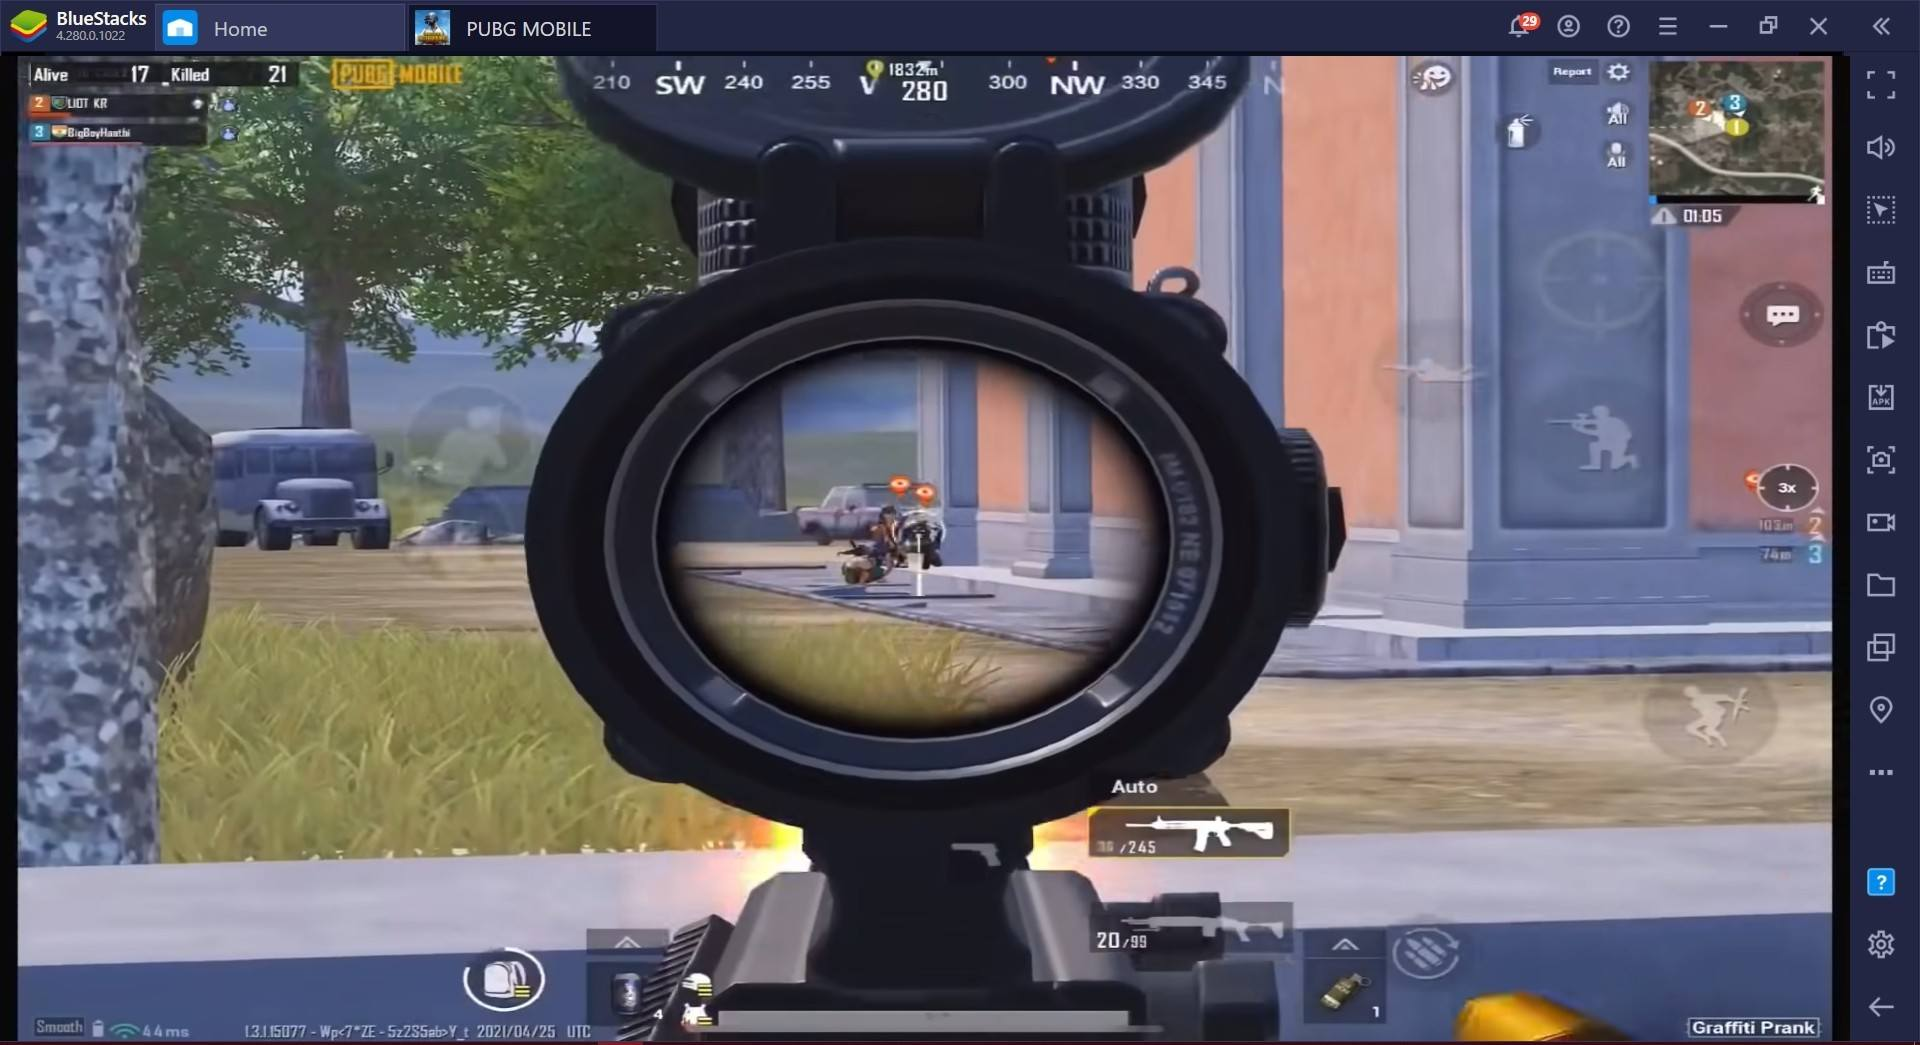 Scope and Shoot: BlueStacks Guide to Scopes In PUBG Mobile